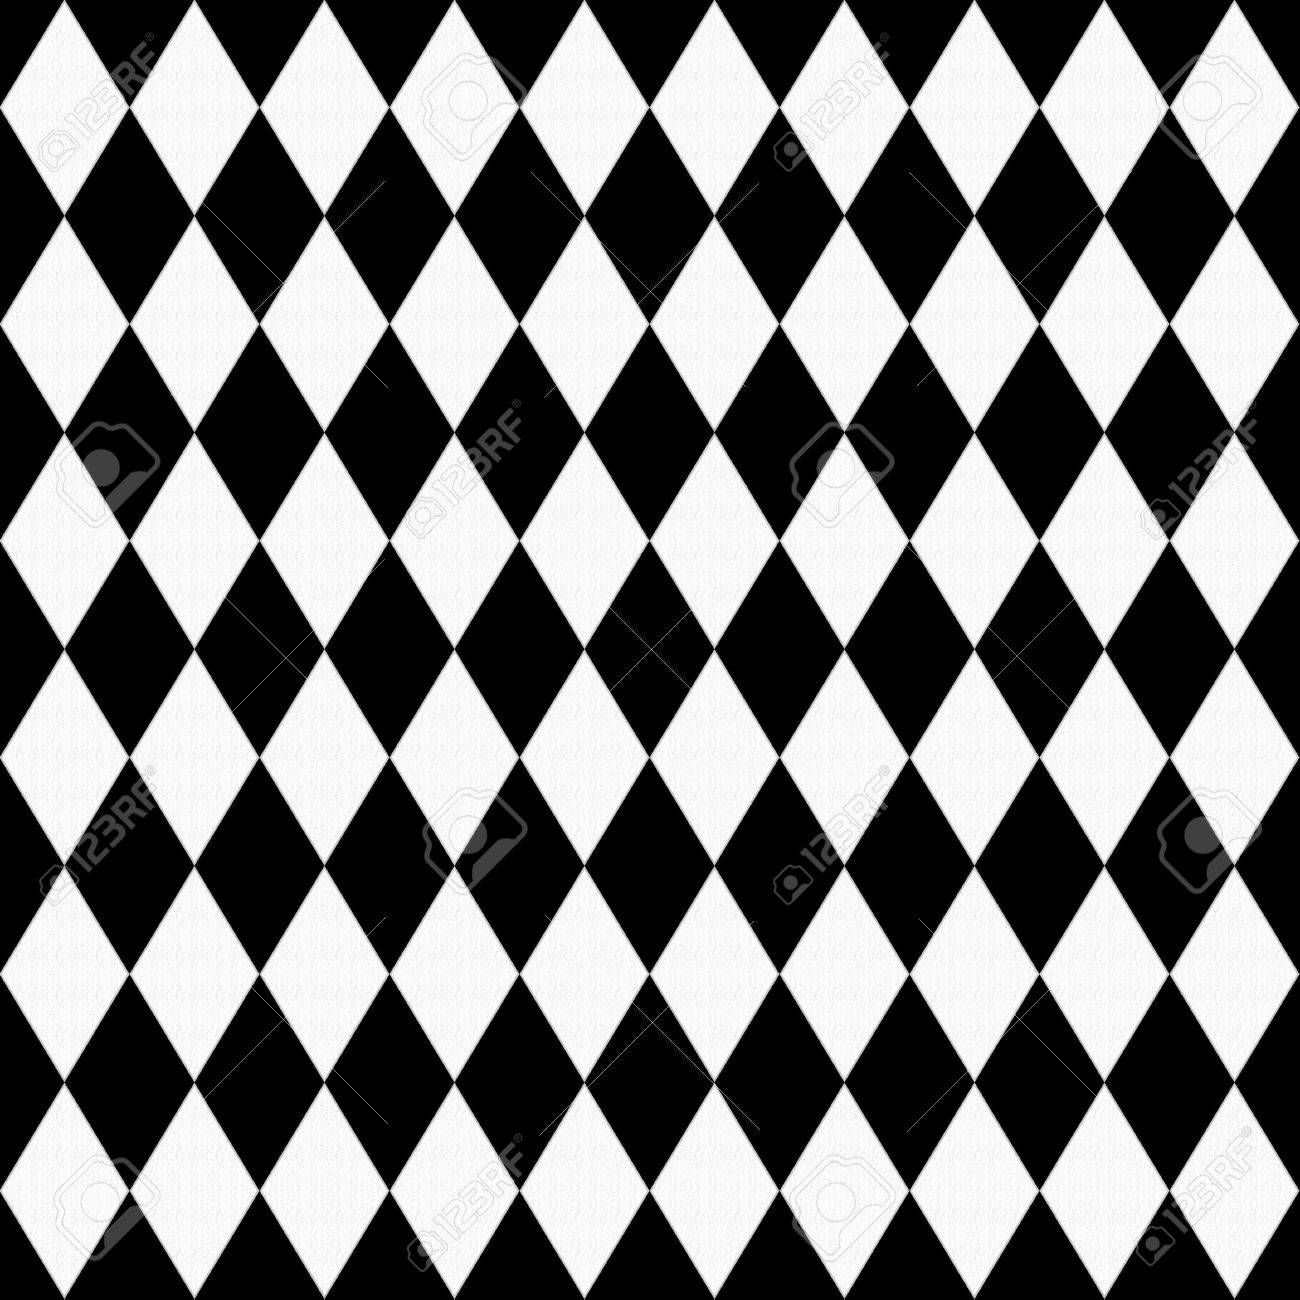 Black And White Diamond Shape Fabric Background That Is Seamless Stock Photo Picture And Royalty Free Image Image 23768535